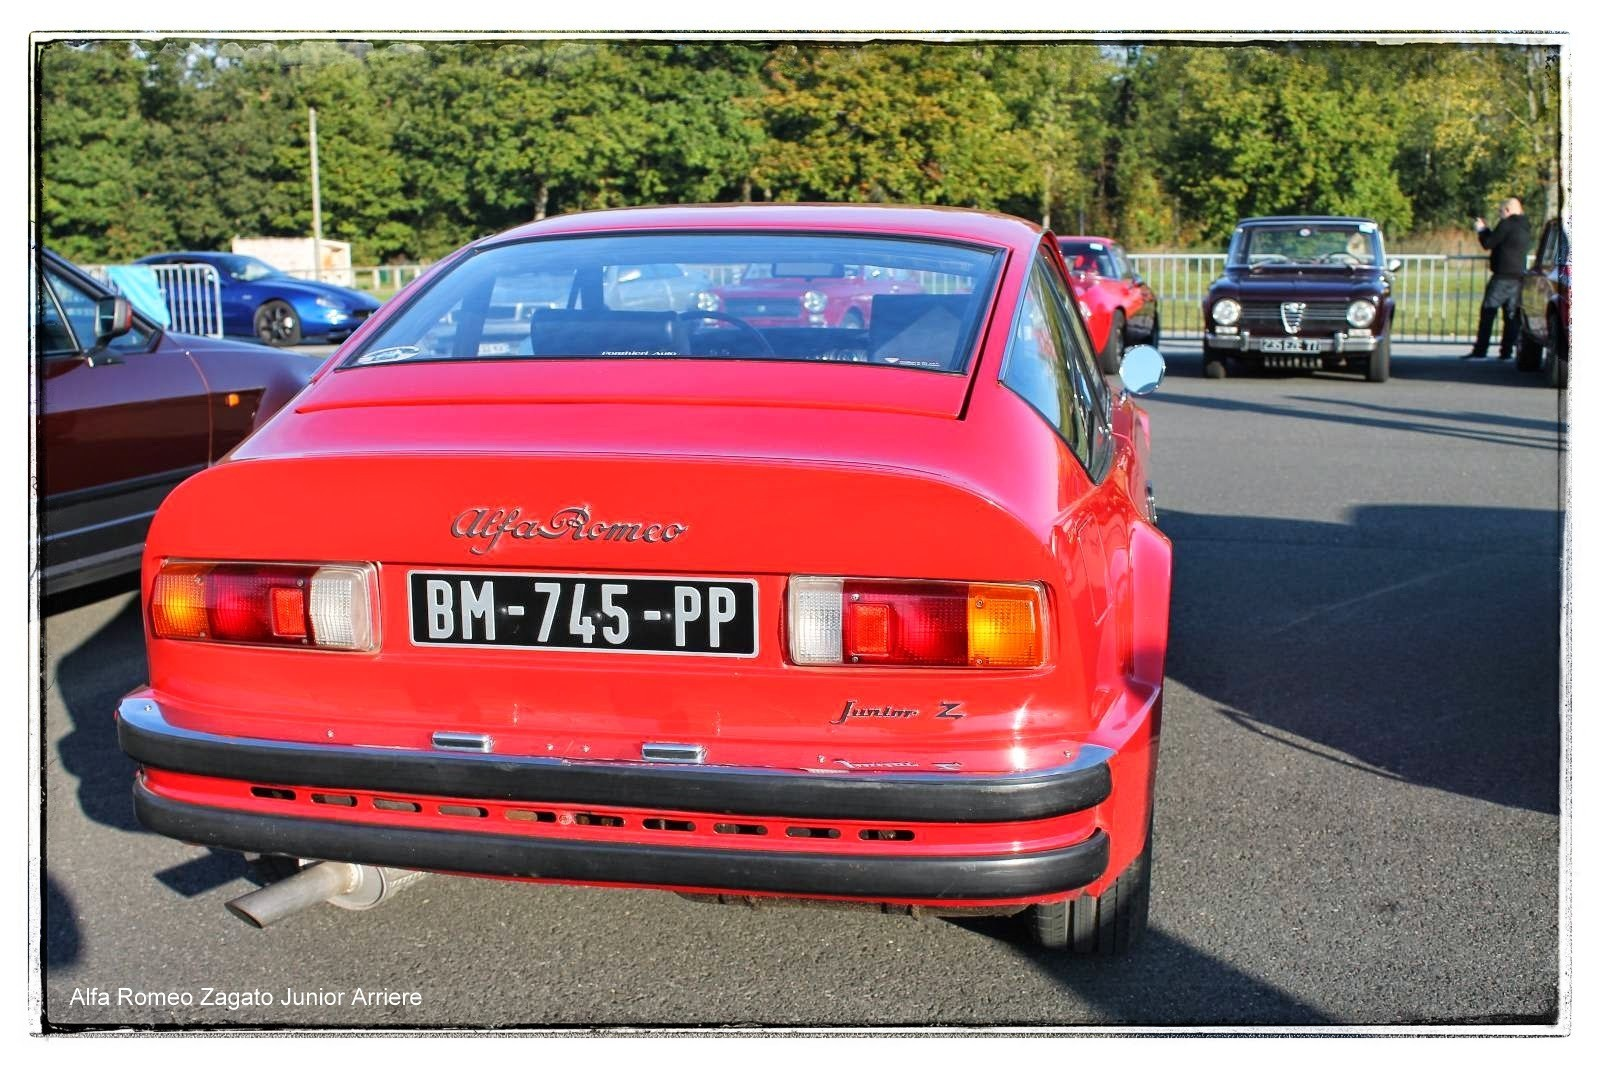 italian meeting - Alfa Romeo Zagato Junior